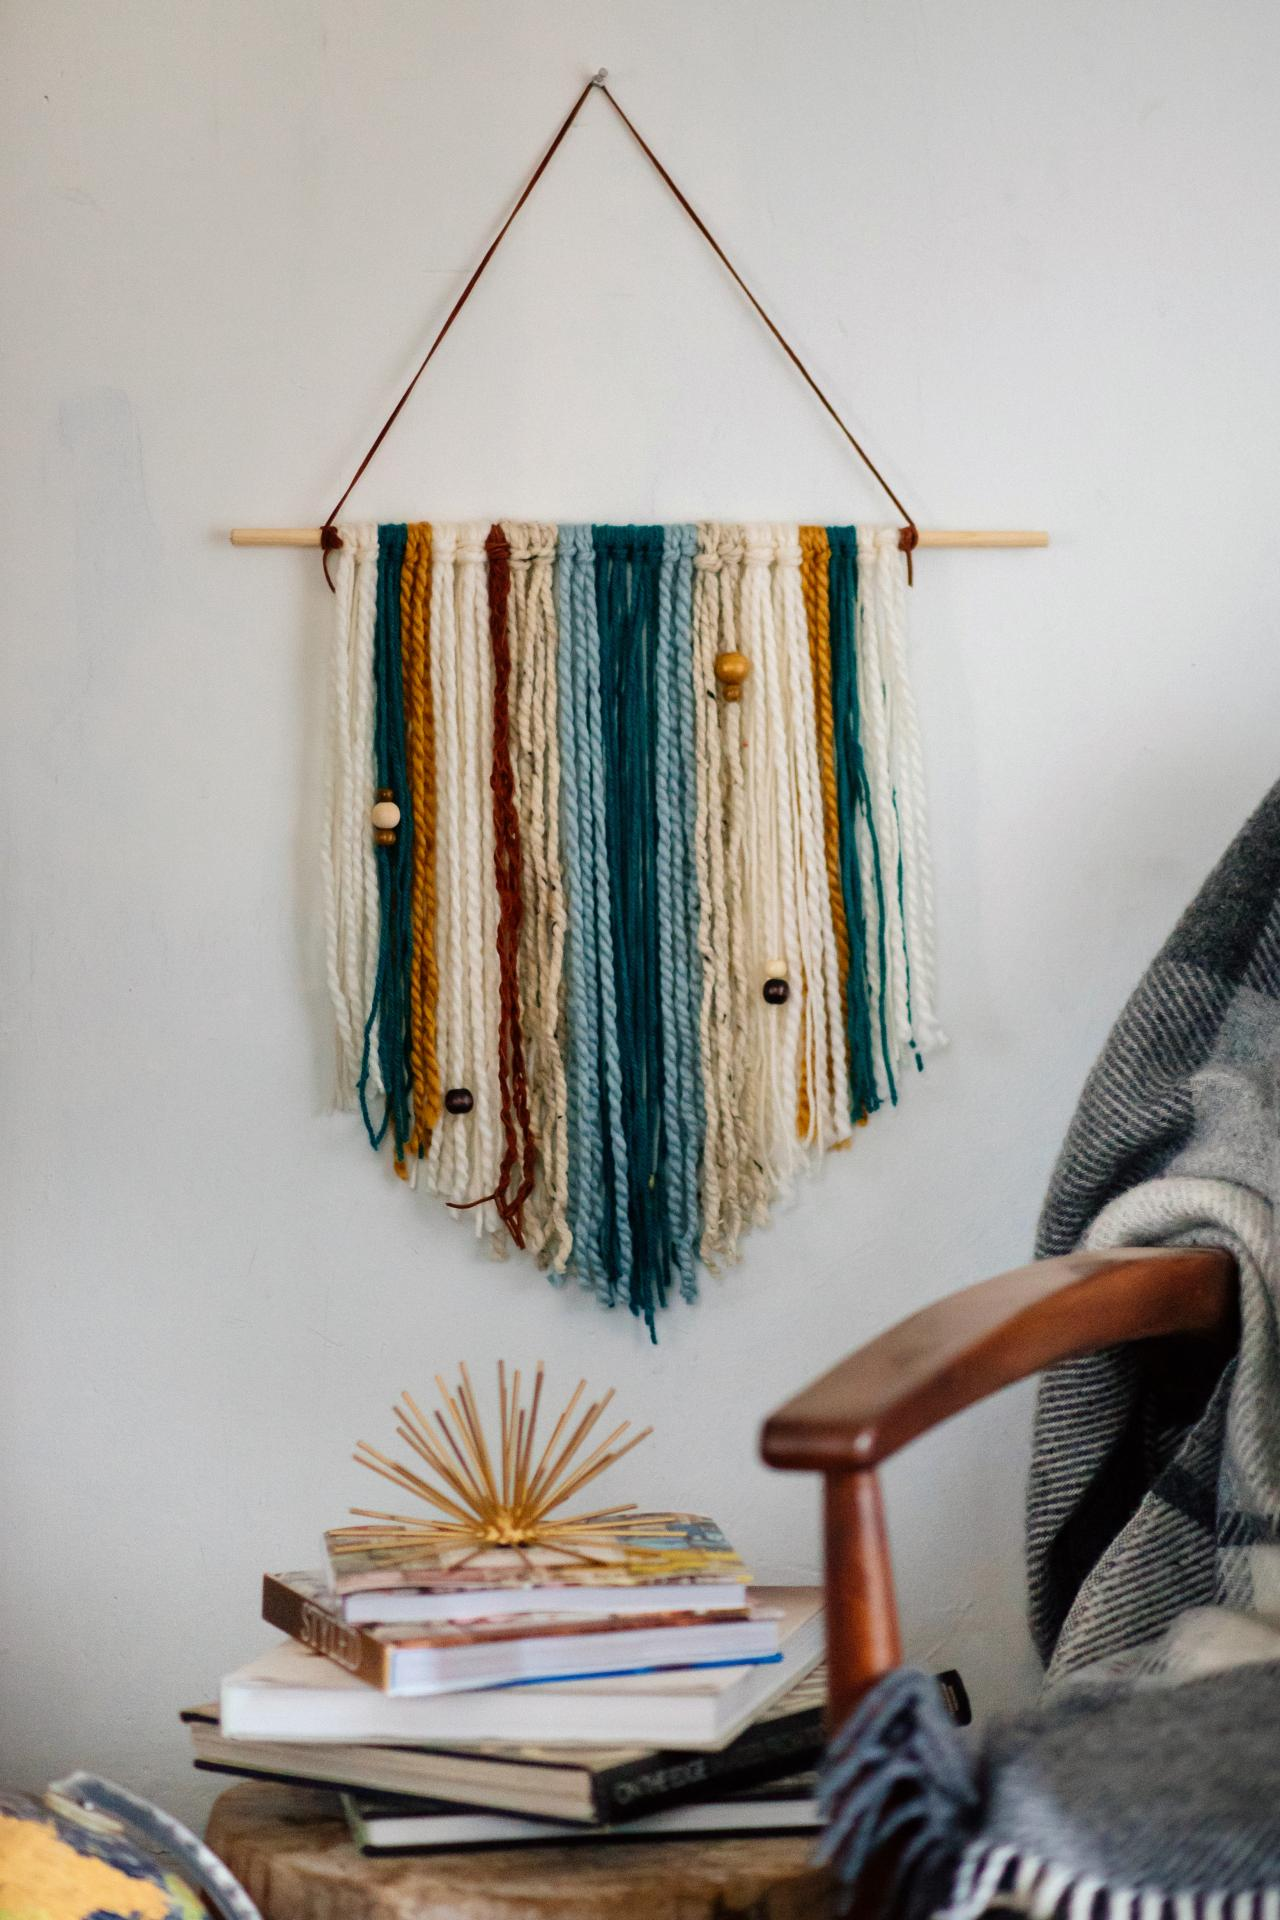 Hanging Wall Decor Ideas How To Make An Easy Diy Yarn Wall Hanging Hgtv